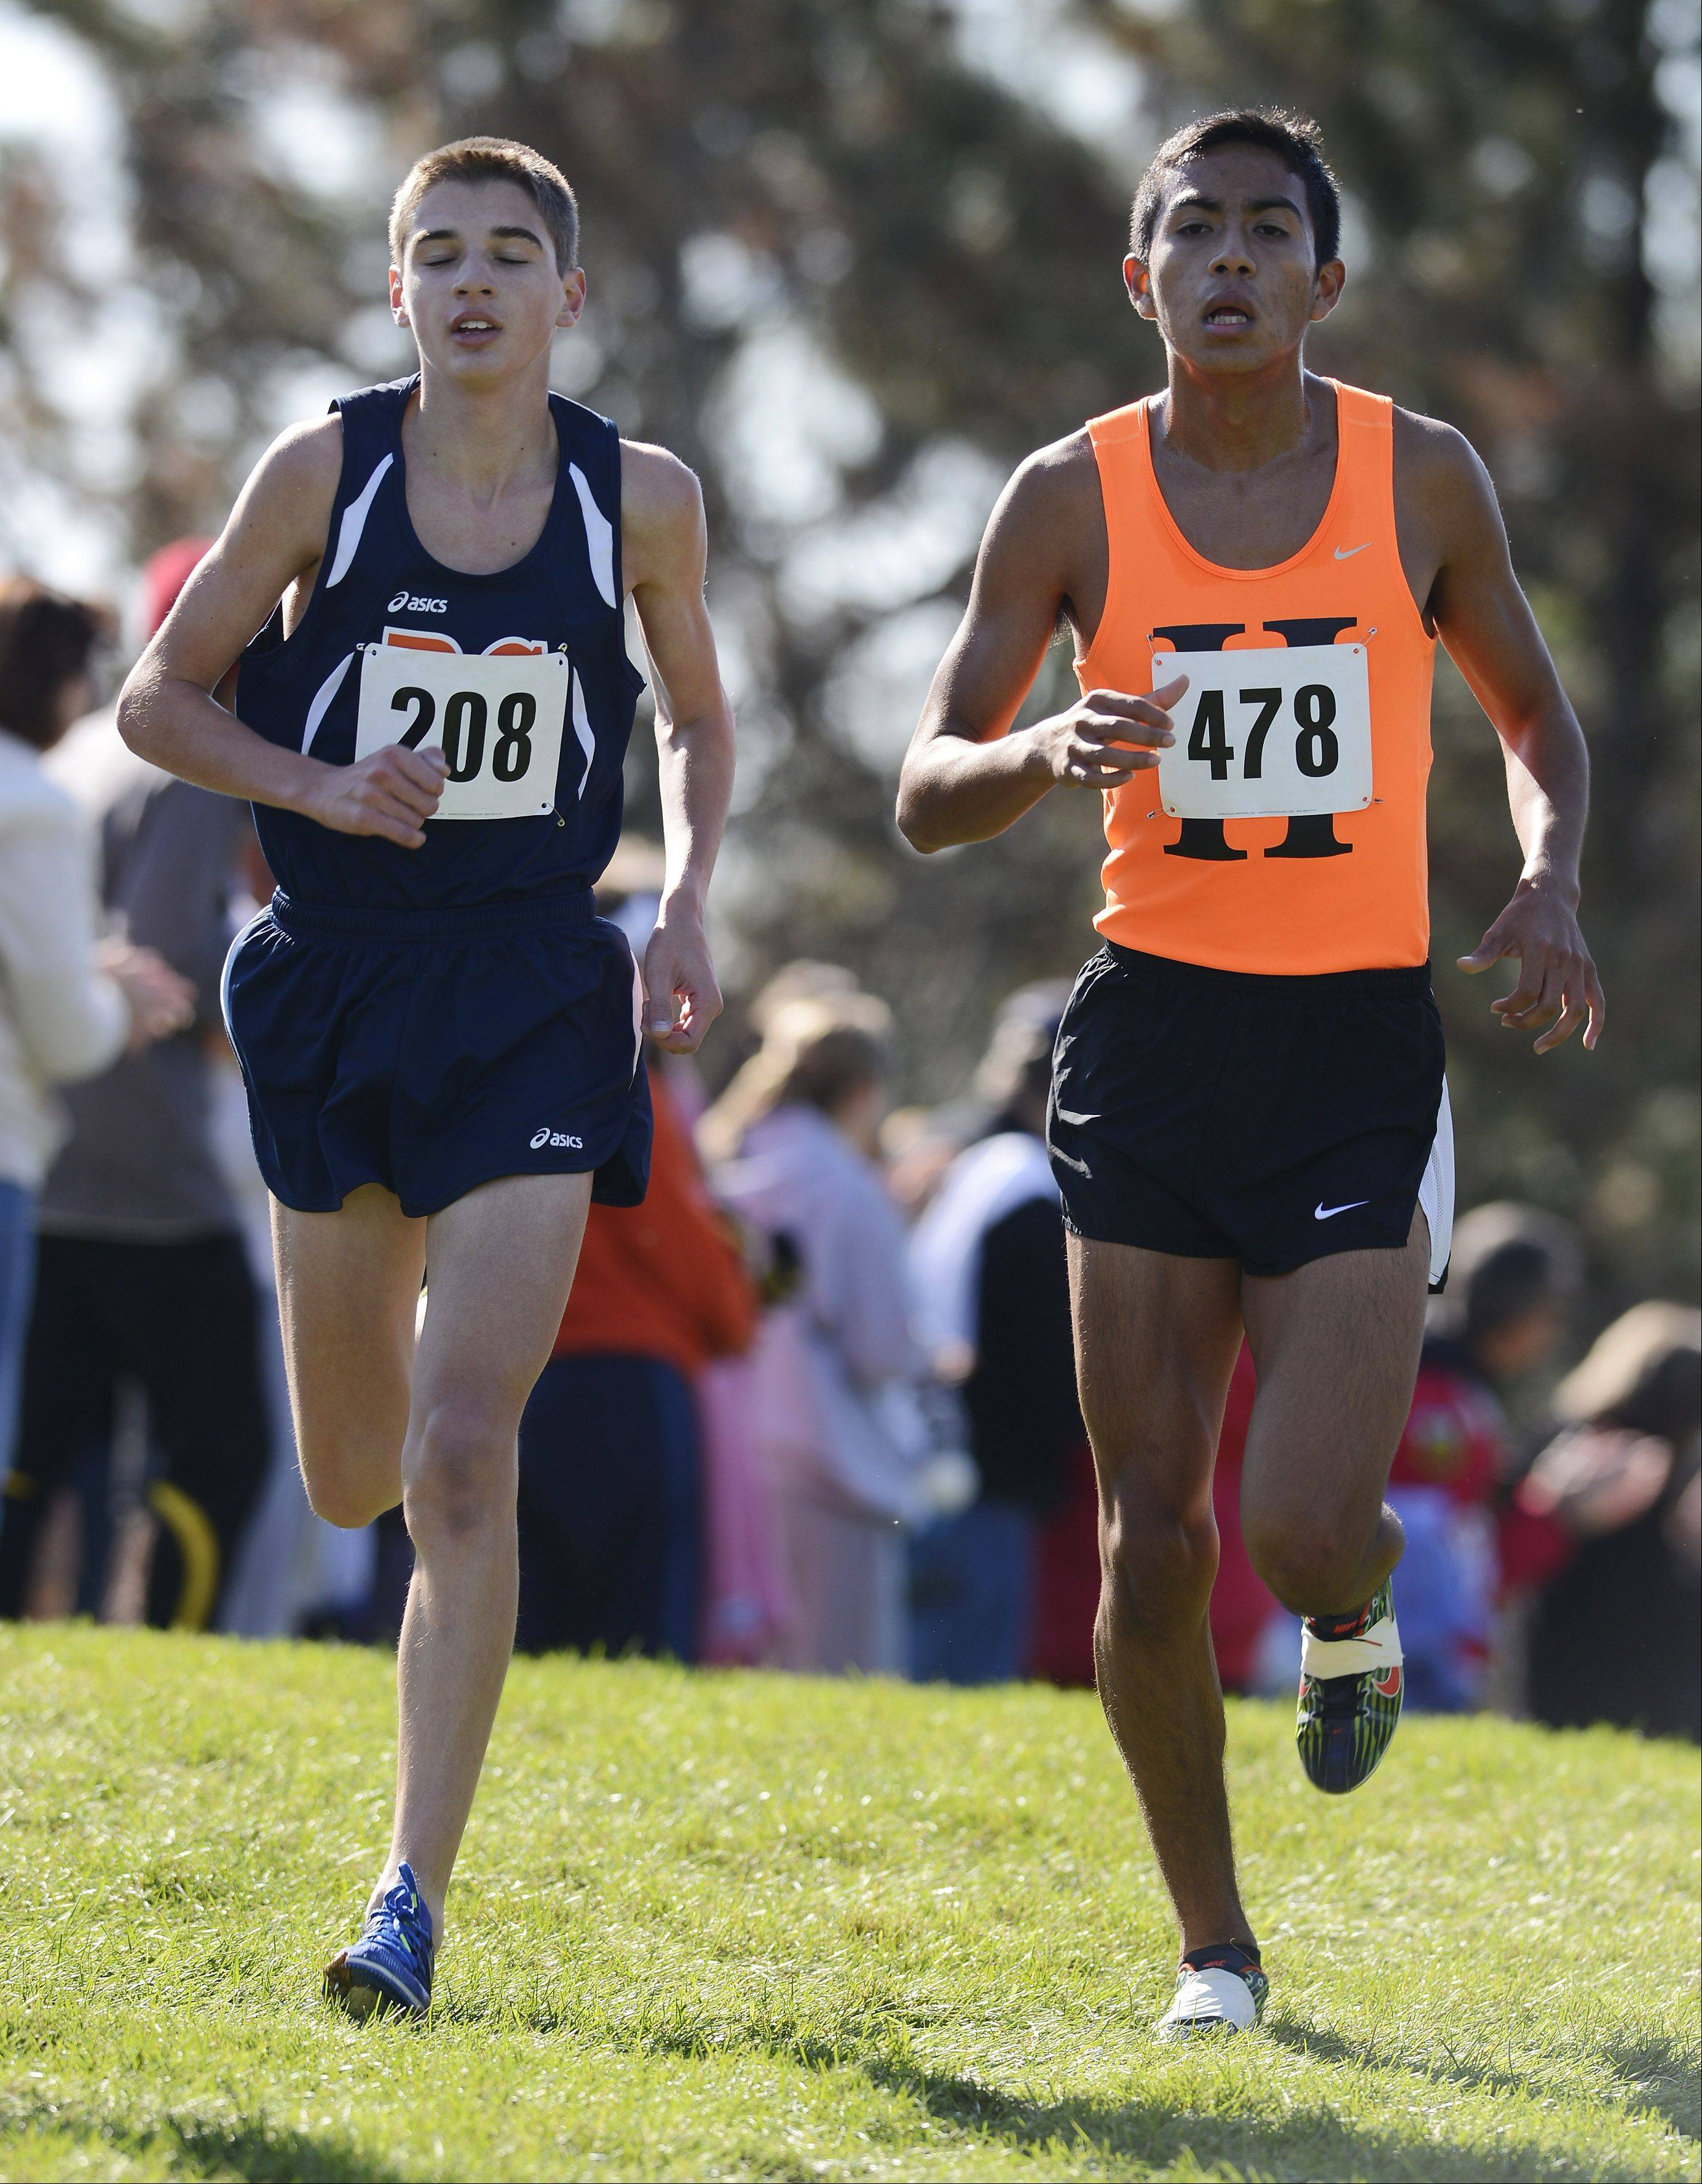 Buffalo Grove's Kevin Salvano, left, and Hersey's David Rodriguez run alongside one another during the Mid-Suburban League cross country meet at Willow Stream Park in Buffalo Grove on Saturday.